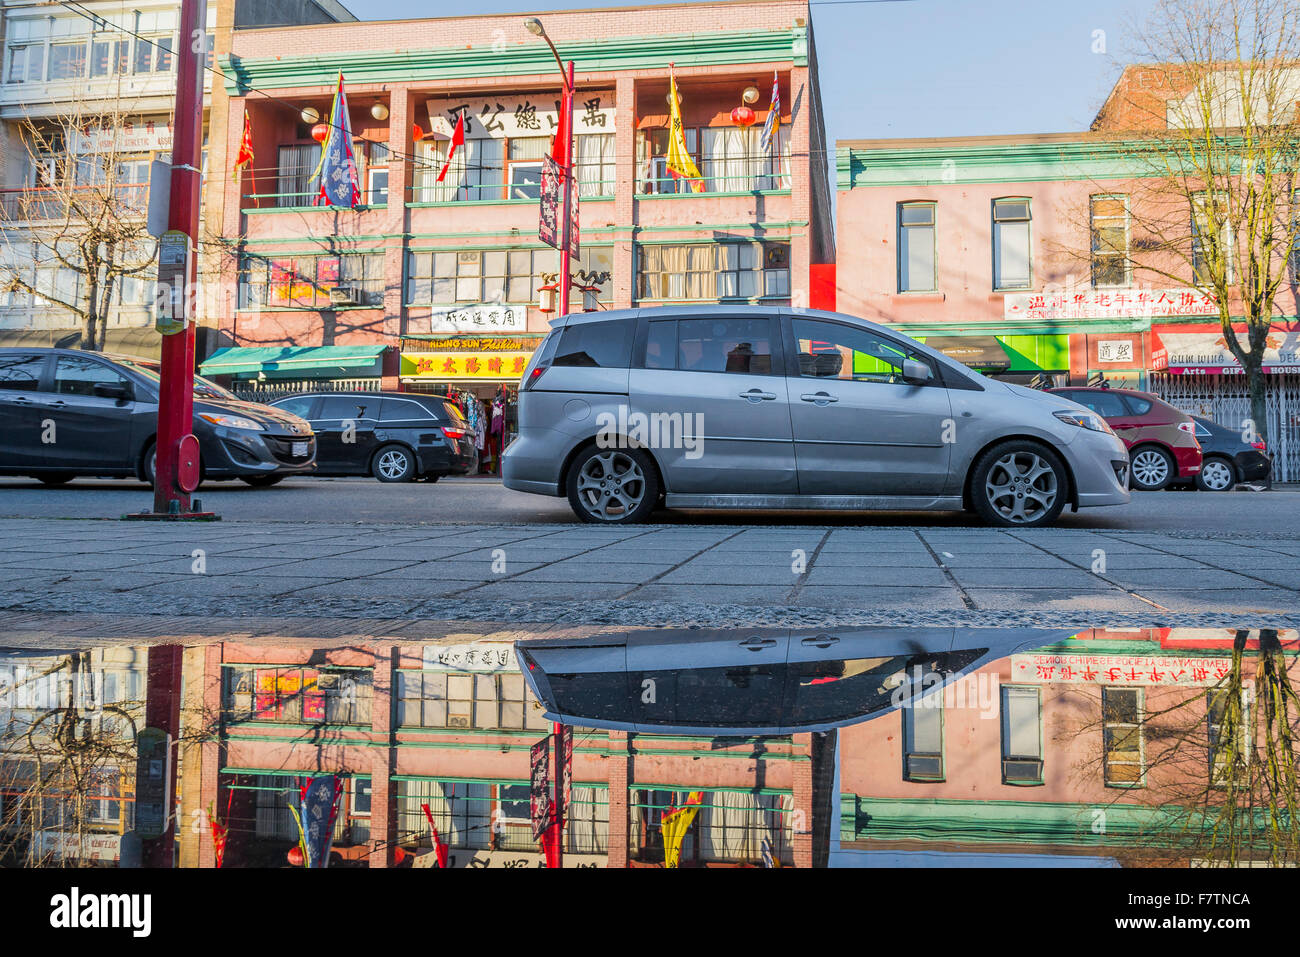 Reflections in puddle on Pender Street, Chinatown,  Vancouver, British Columbia, Canada - Stock Image